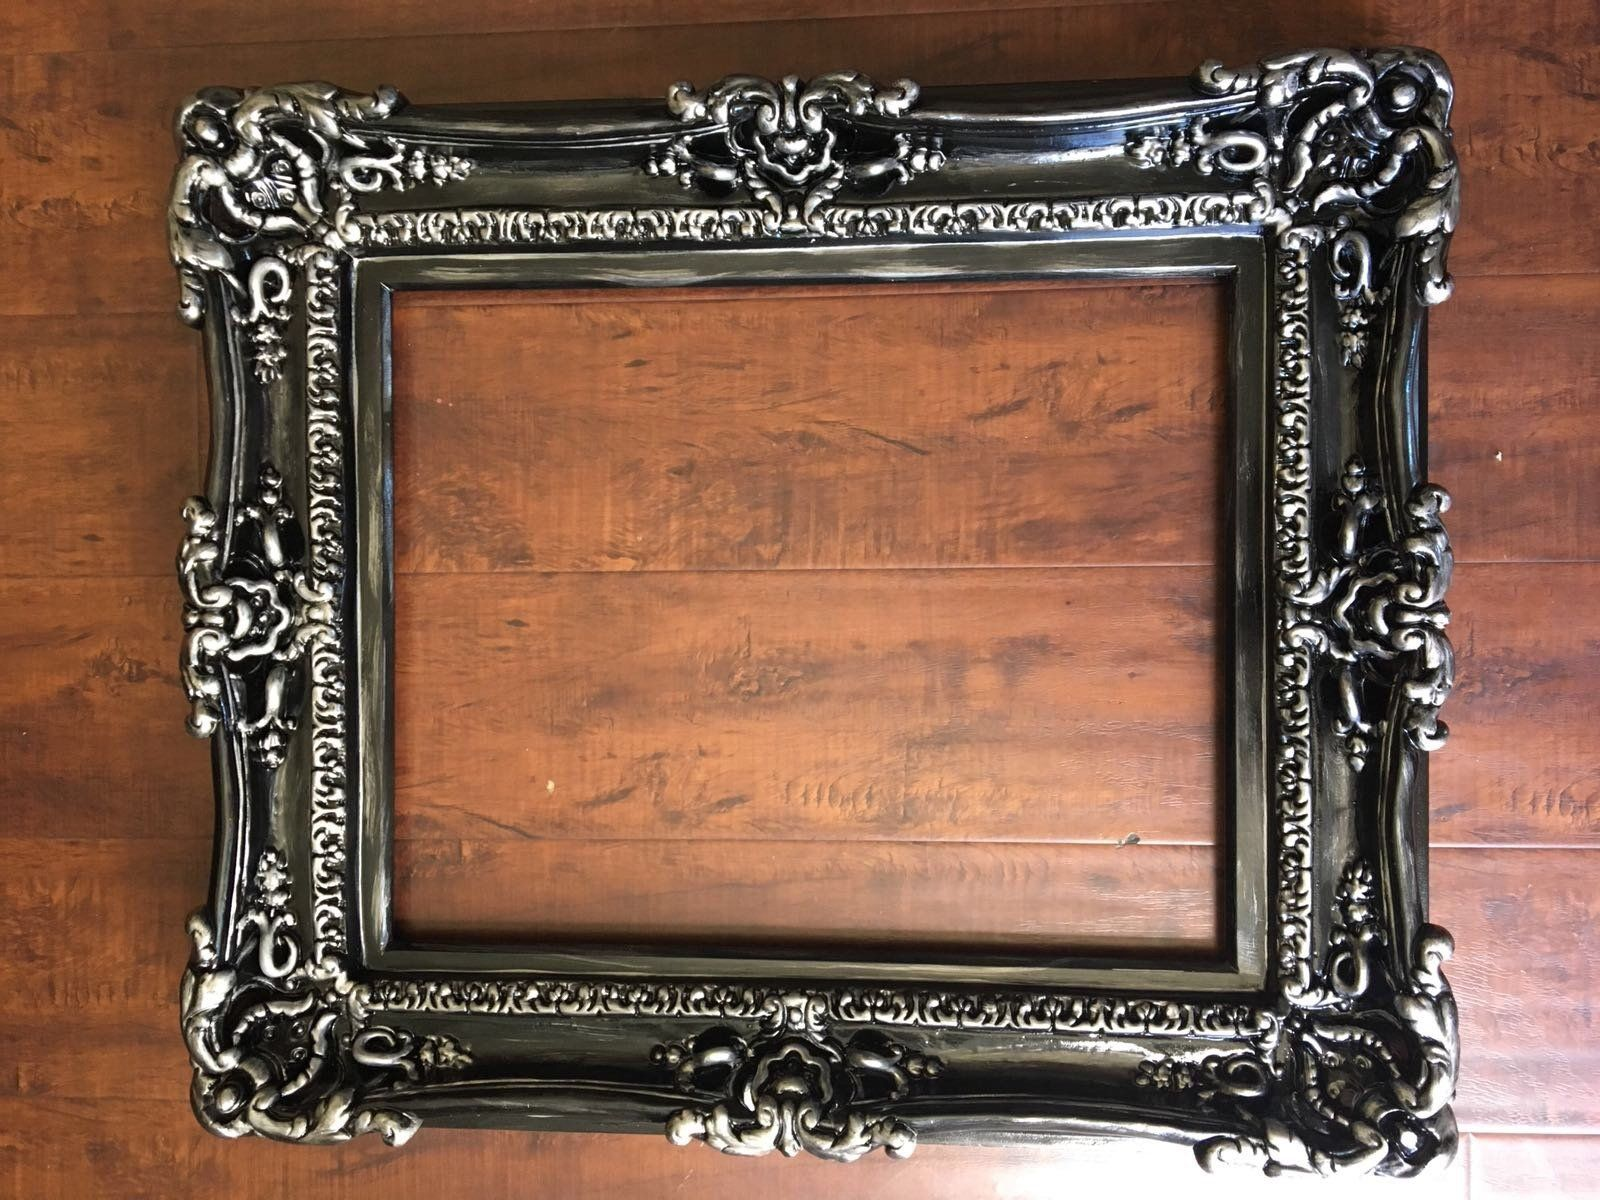 20x24 Large Picture Frame Black Silver Frames Shabby Chic Frame Ornate Wall Mirror Baroque Frame Wedding Gift Frames For Canvas Shabby Chic Frames Large Picture Frames Baroque Frames